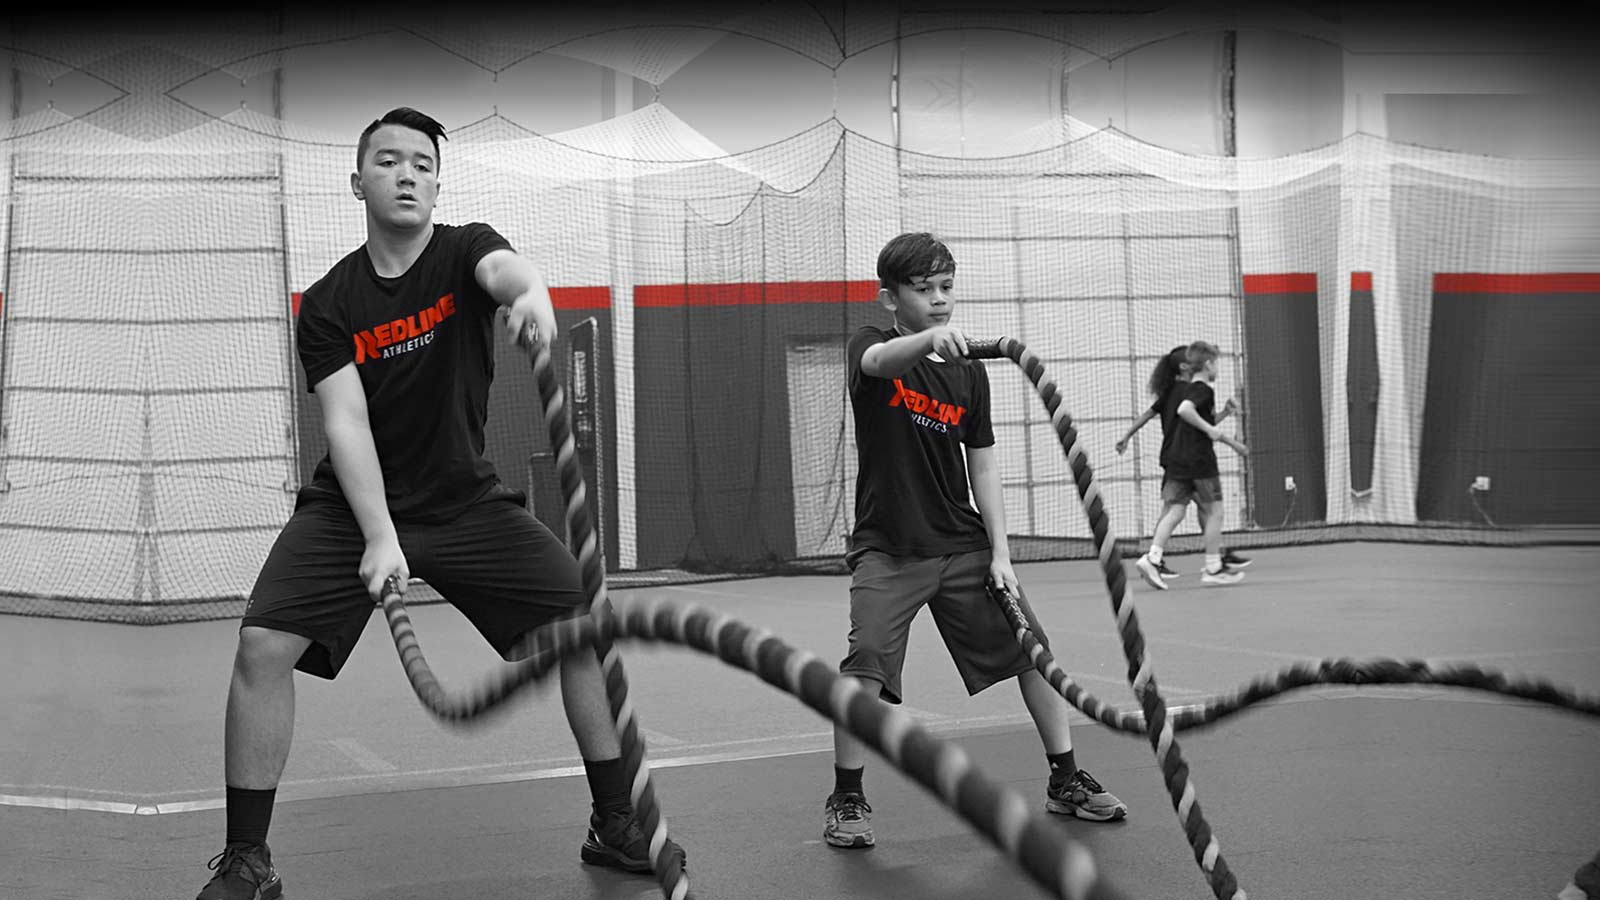 boys train on ropes at Redline Athletics